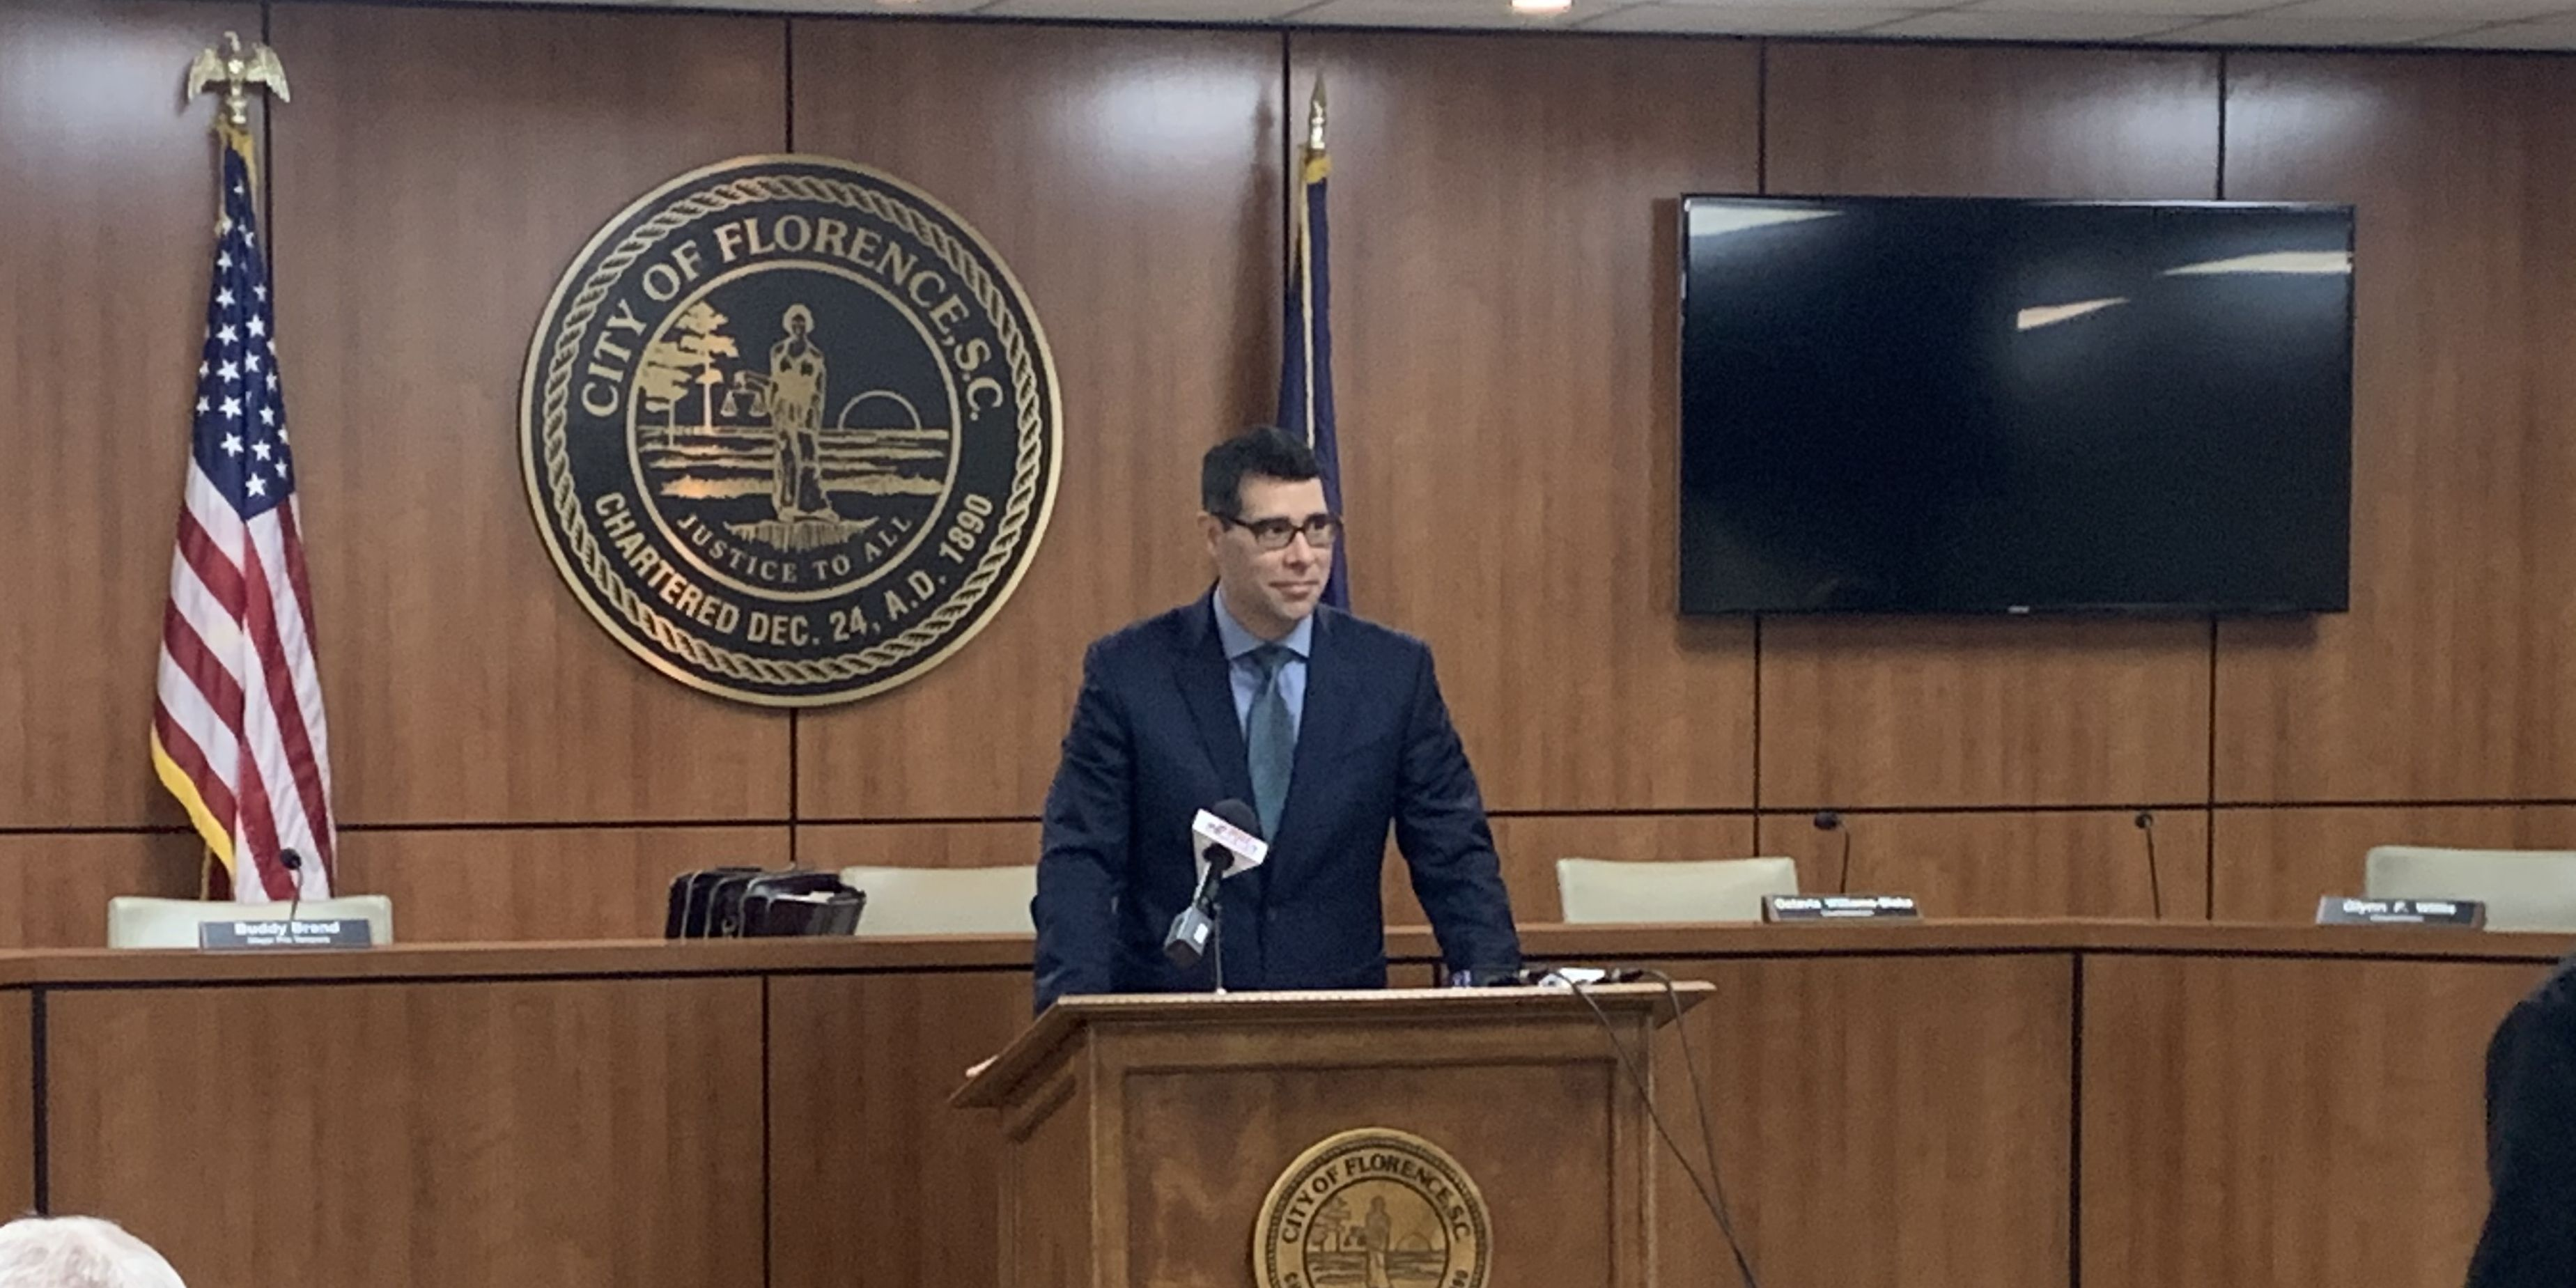 City of Florence enacts state of emergency in response to COVID-19